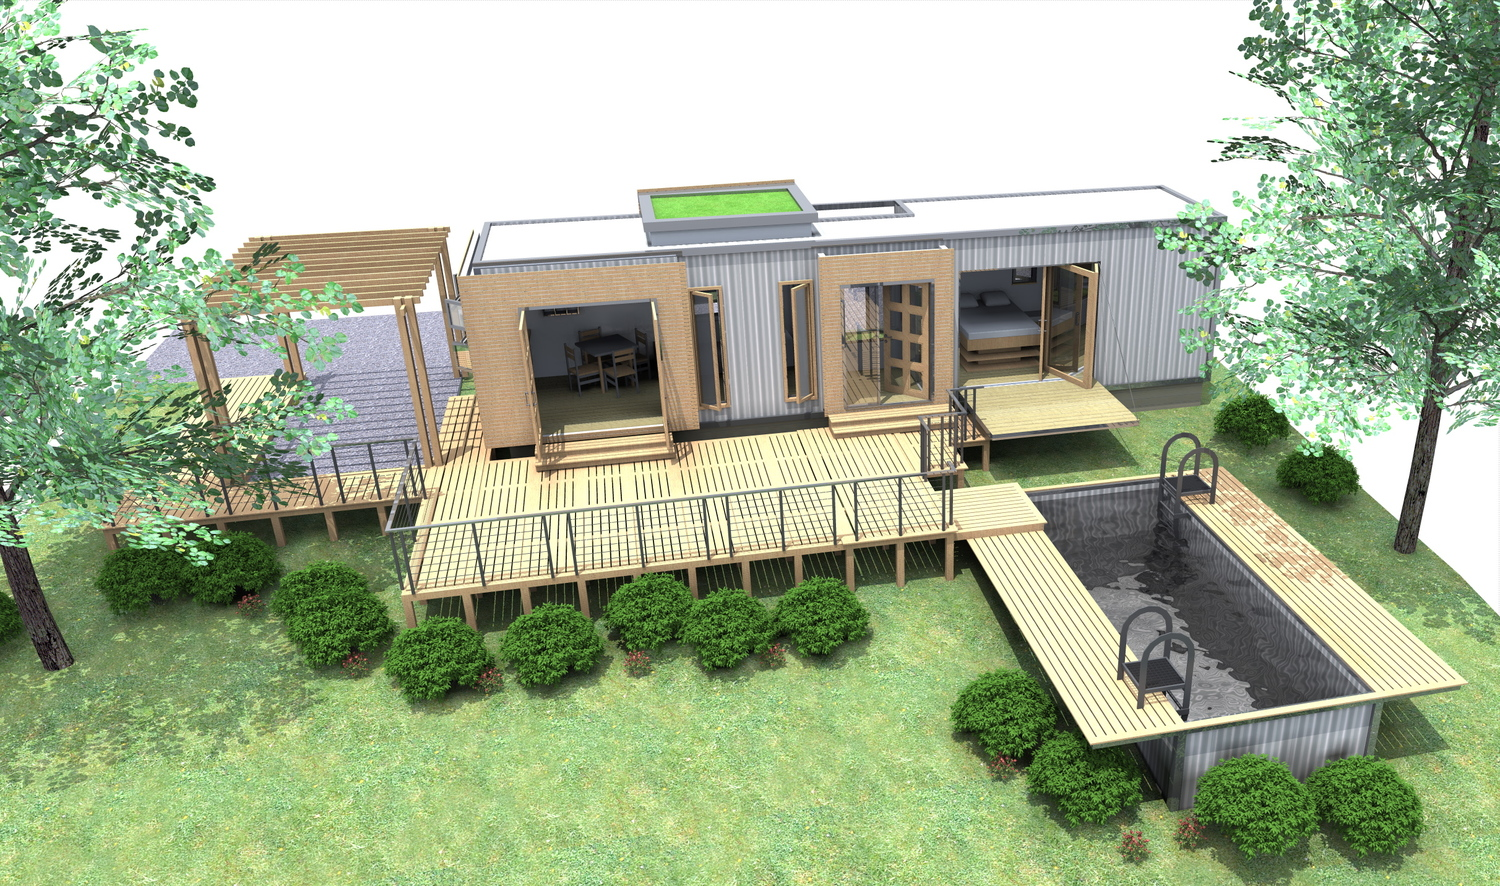 Shipping Container Homes: 40ft Shipping Container Home Eco Pig  #778F3C 1500x886 Banheiro De Luxo Container